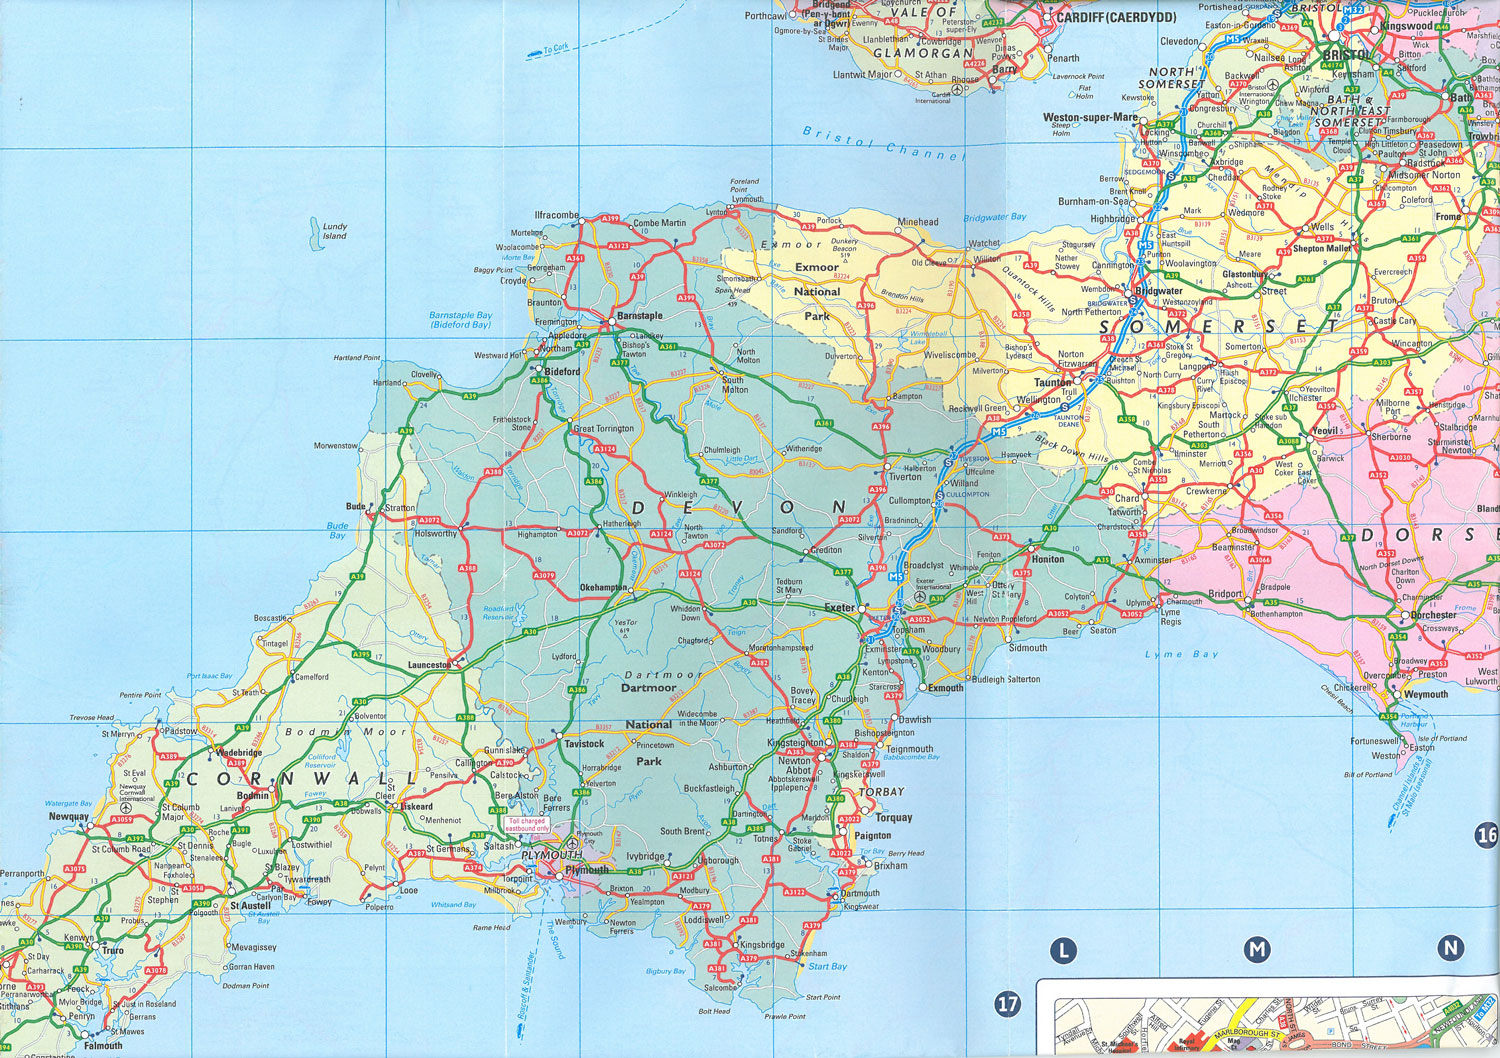 My travel-frayed Map of Devon, England